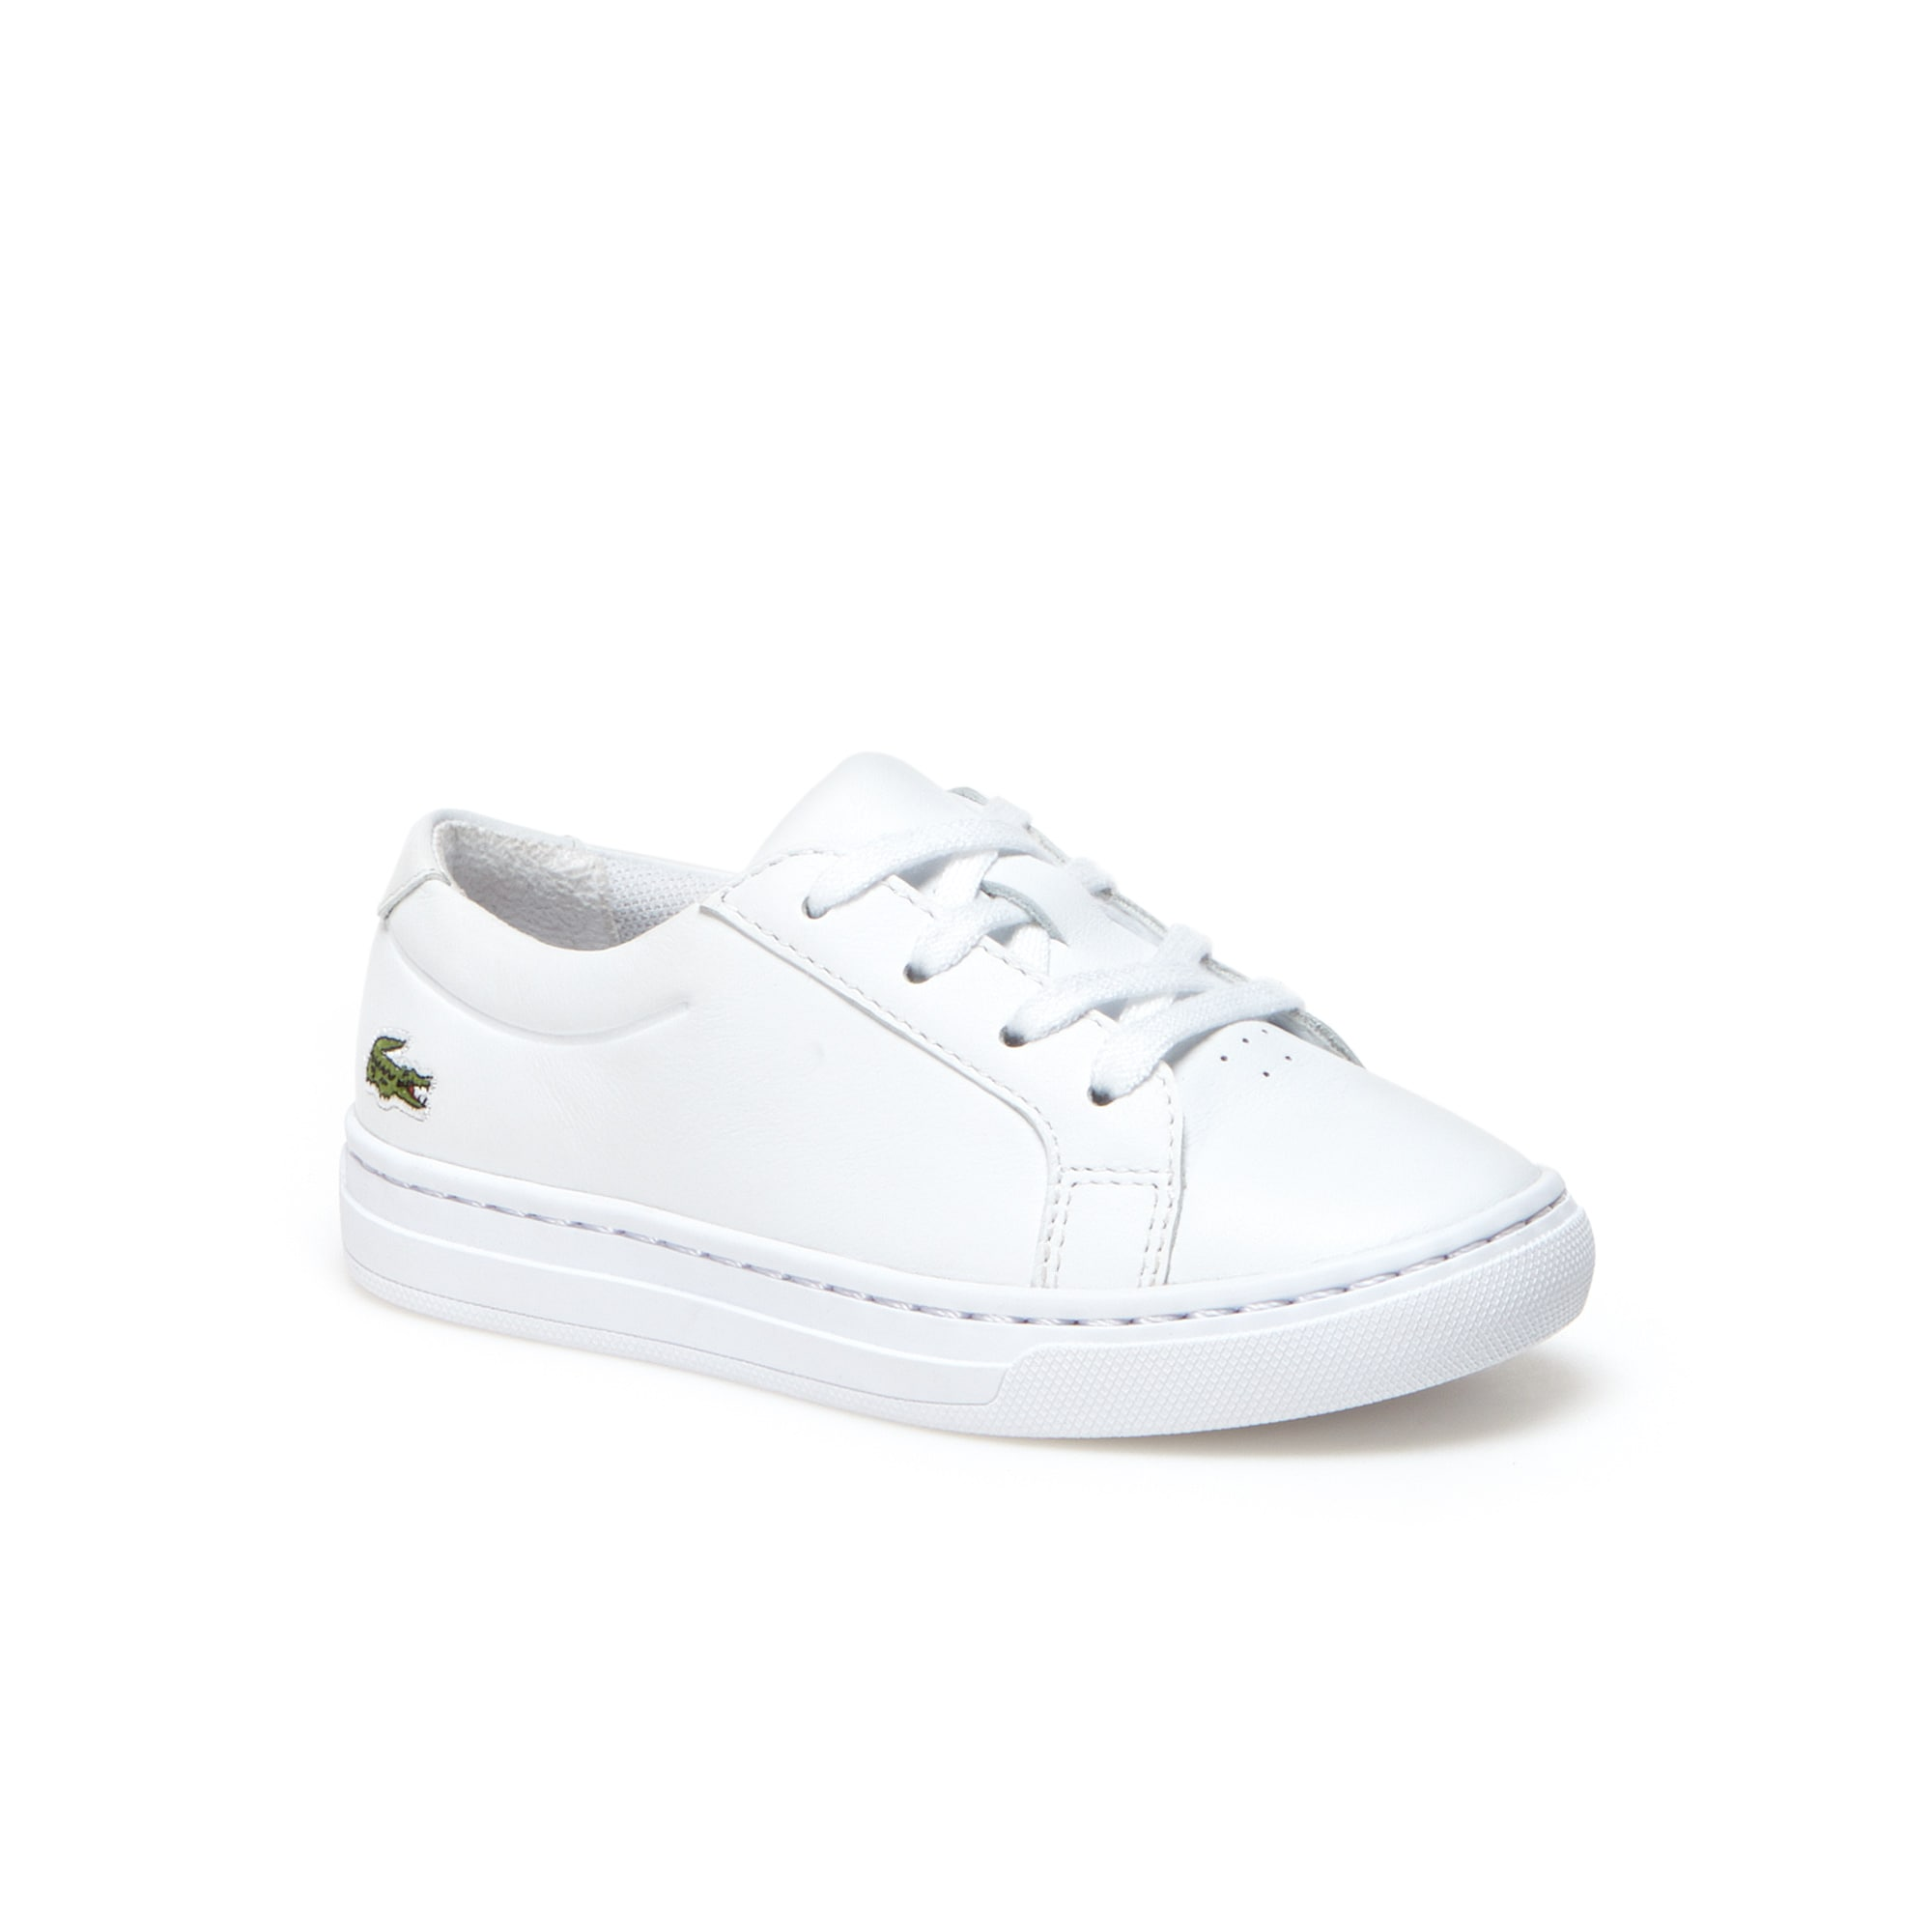 Kids' L.12.12 Leather Sneakers